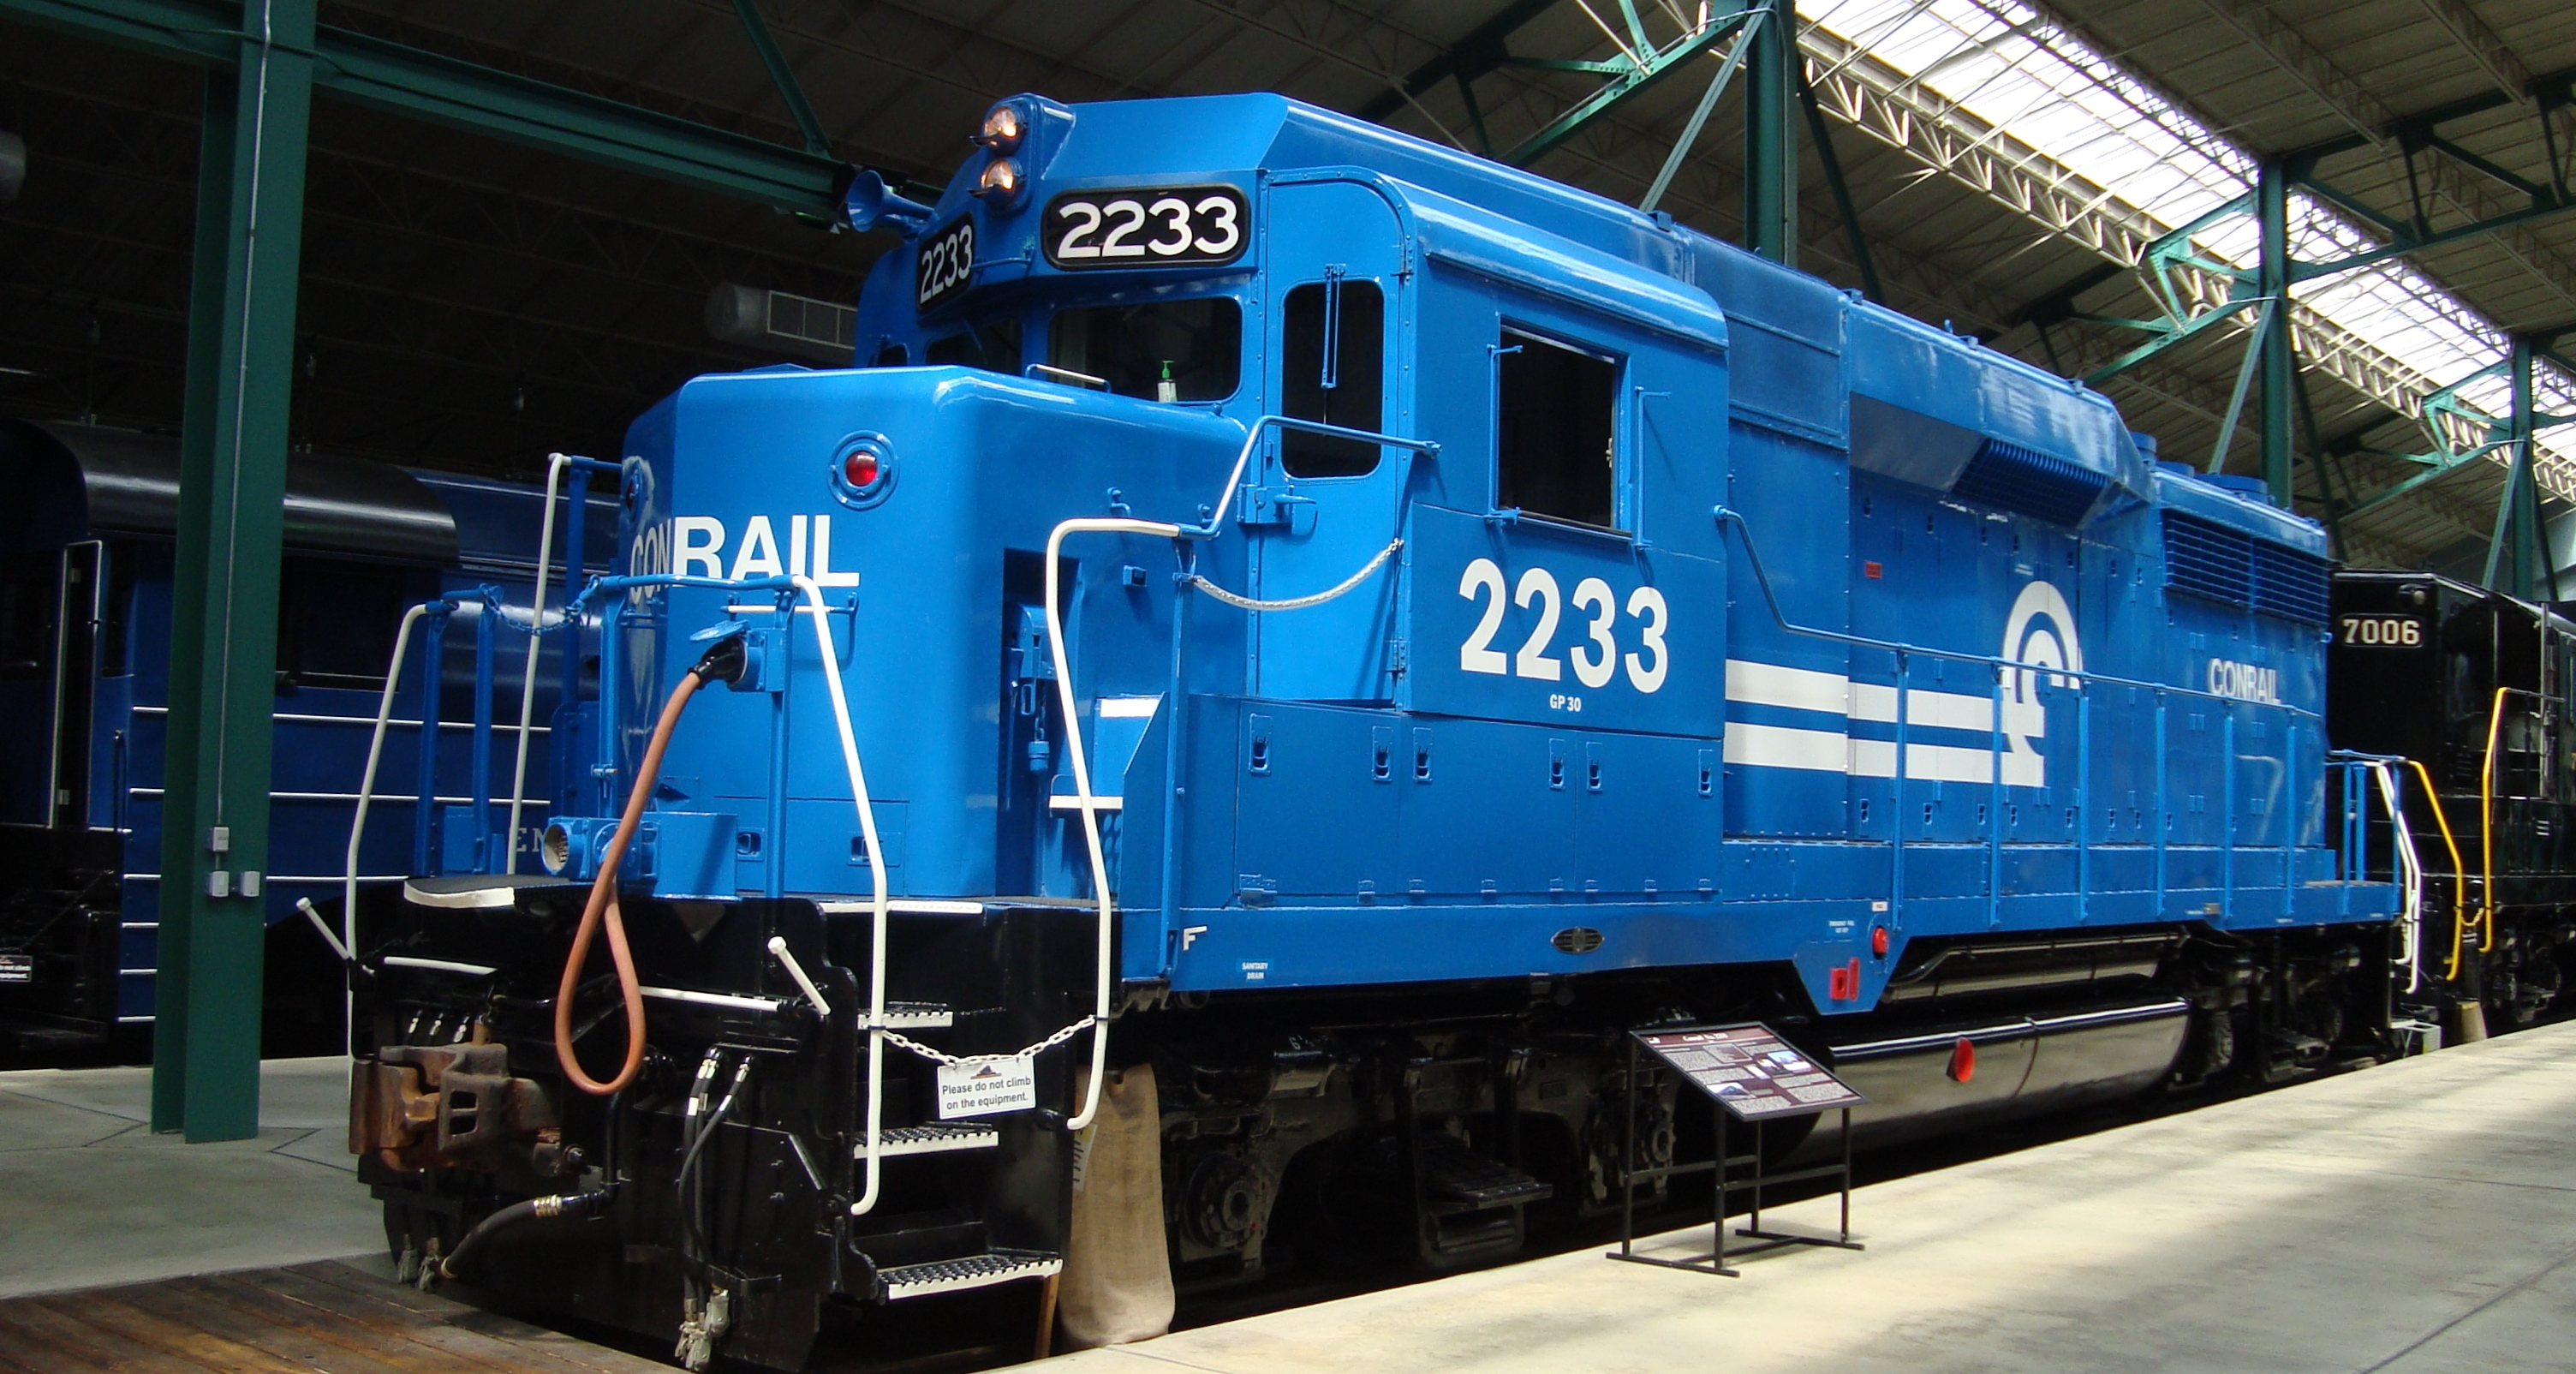 File:Conrail 2233 in the Sun.JPG